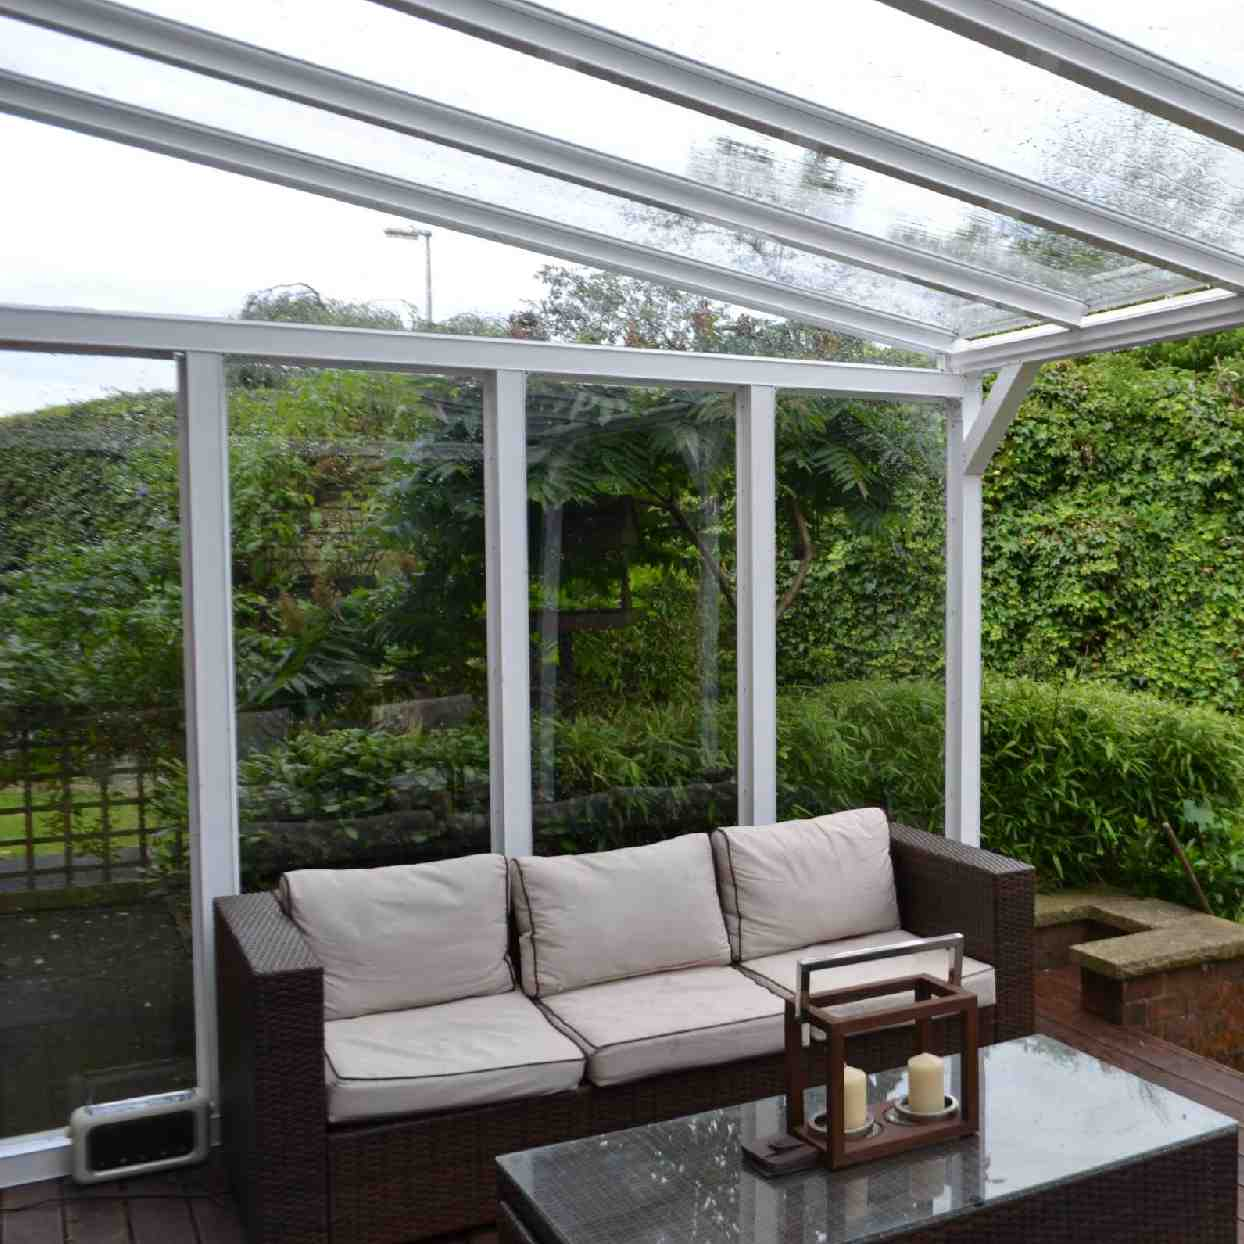 Buy Omega Verandah with 16mm Polycarbonate Glazing - 4.2m (W) x 3.0m (P), (3) Supporting Posts online today